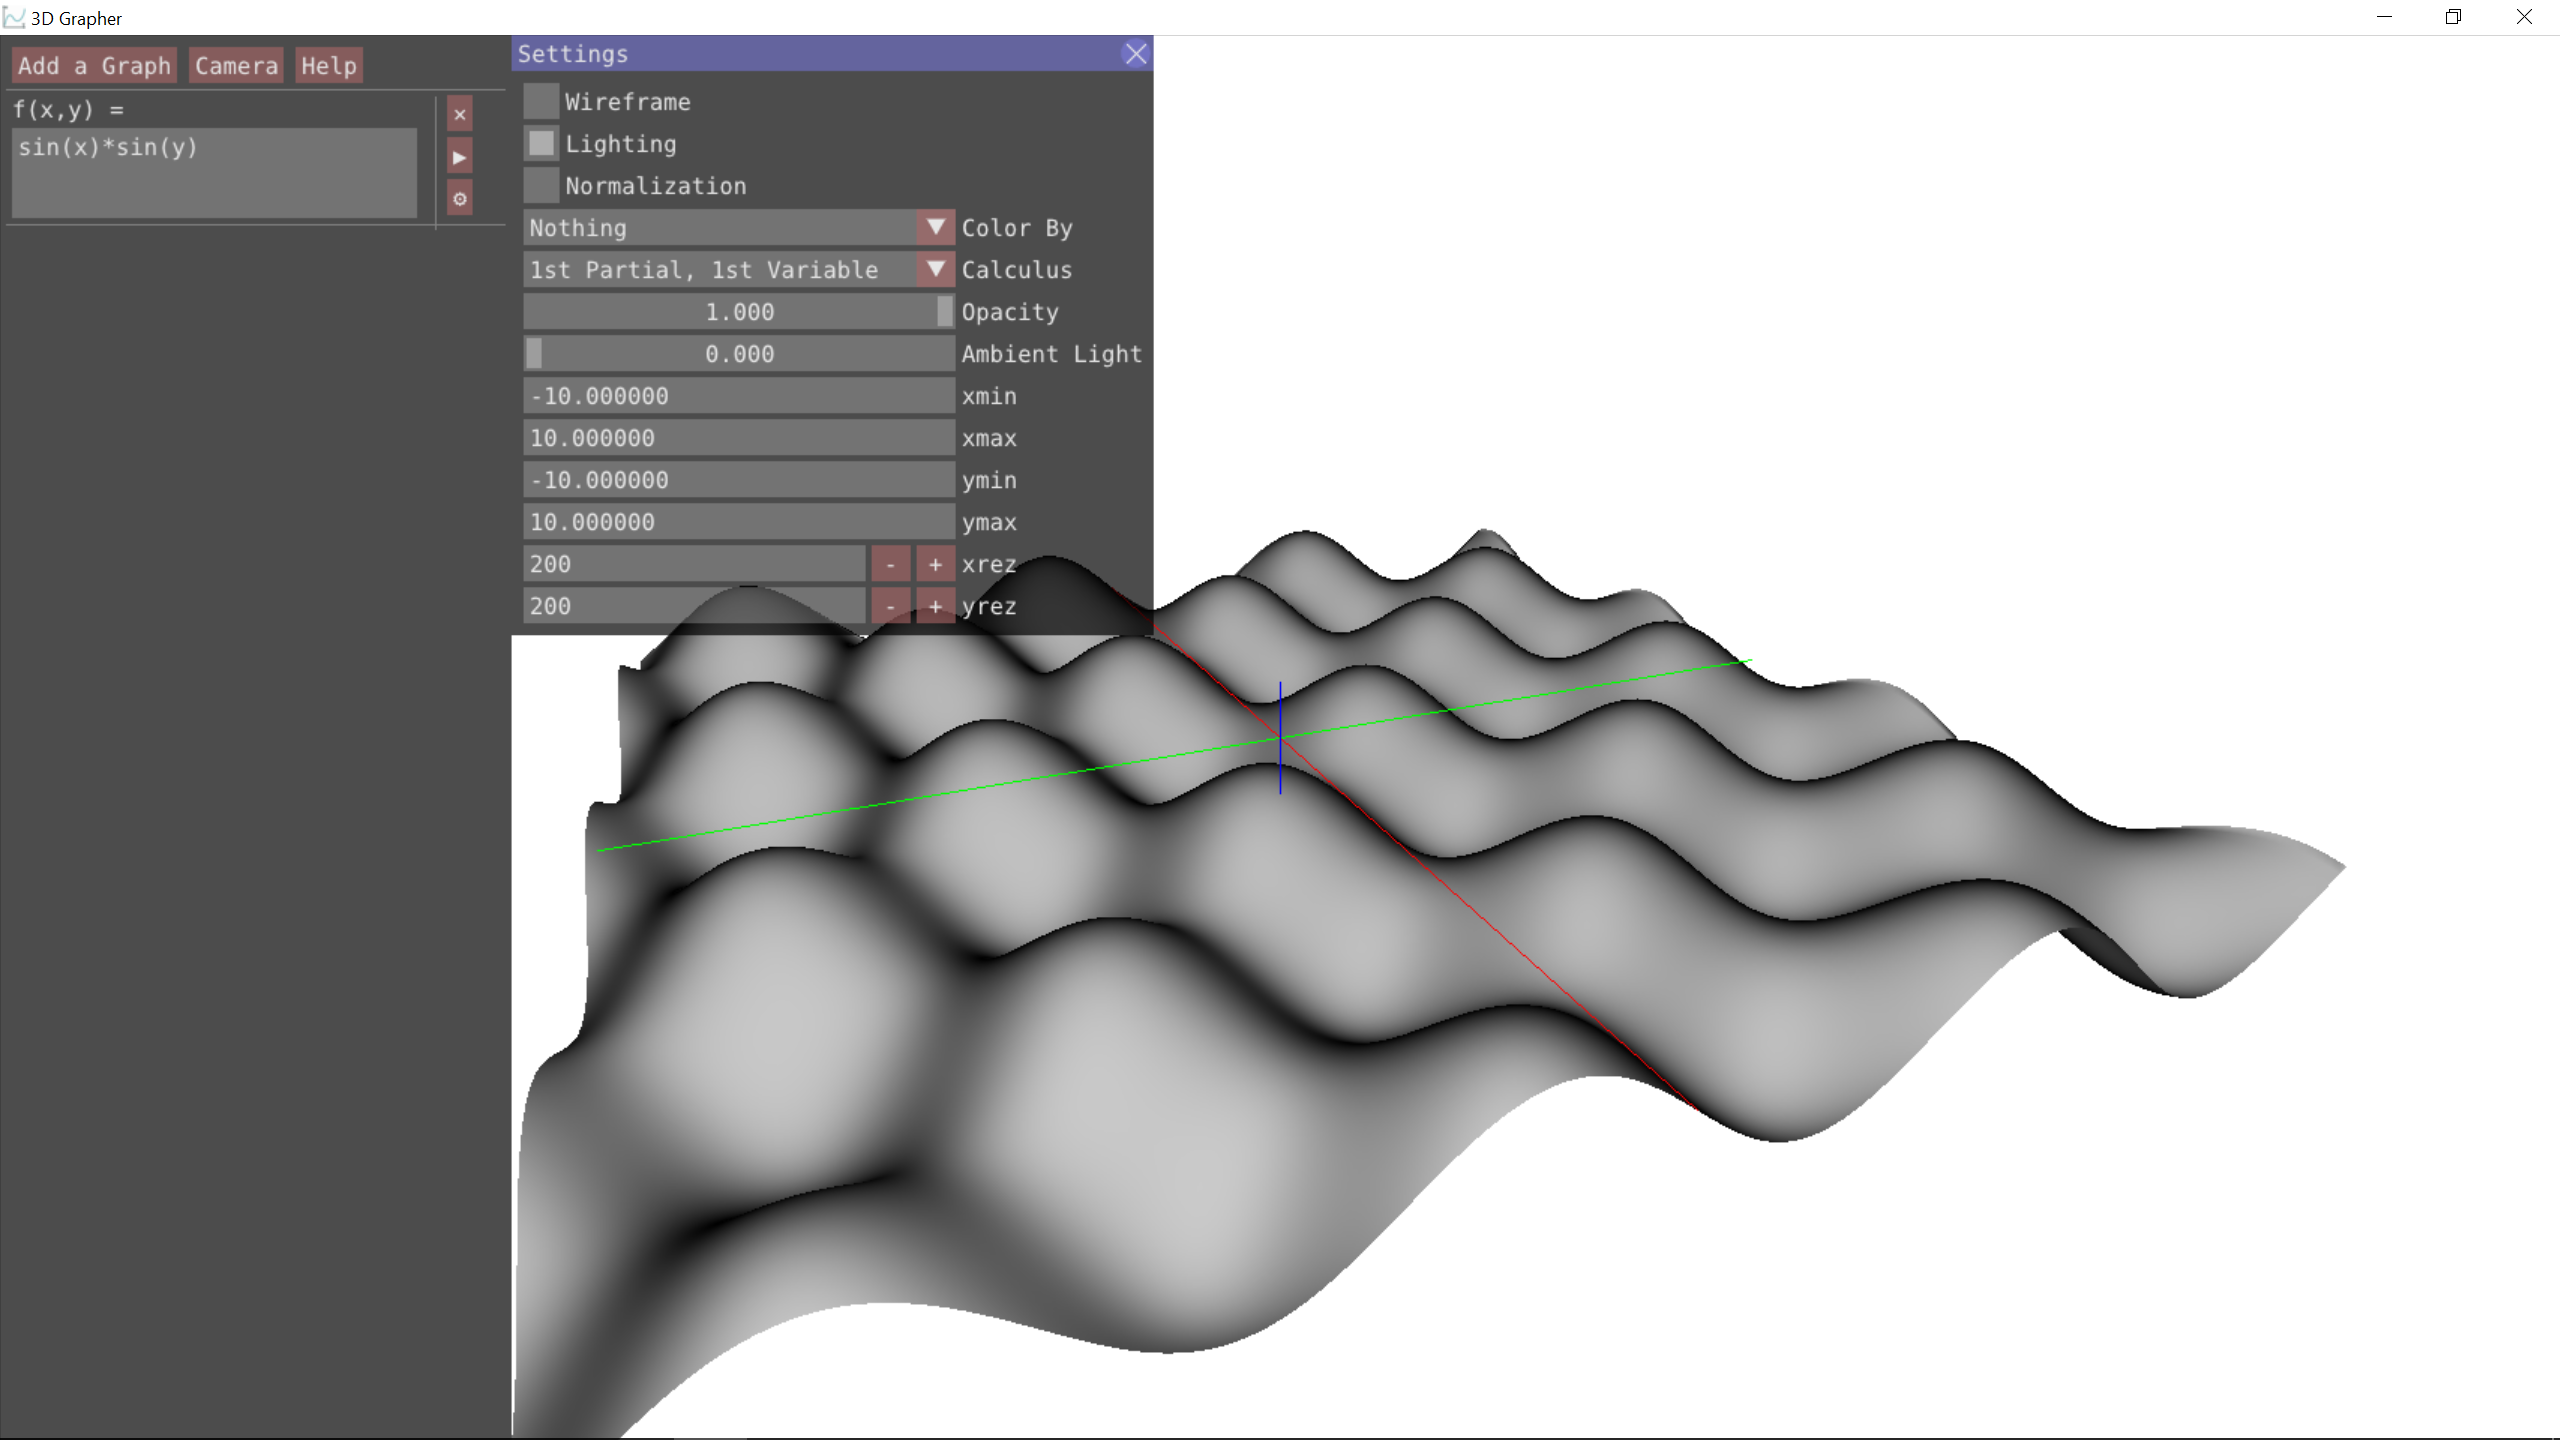 github - thenumbat/3d-grapher: 3d graphing app for calculus 3